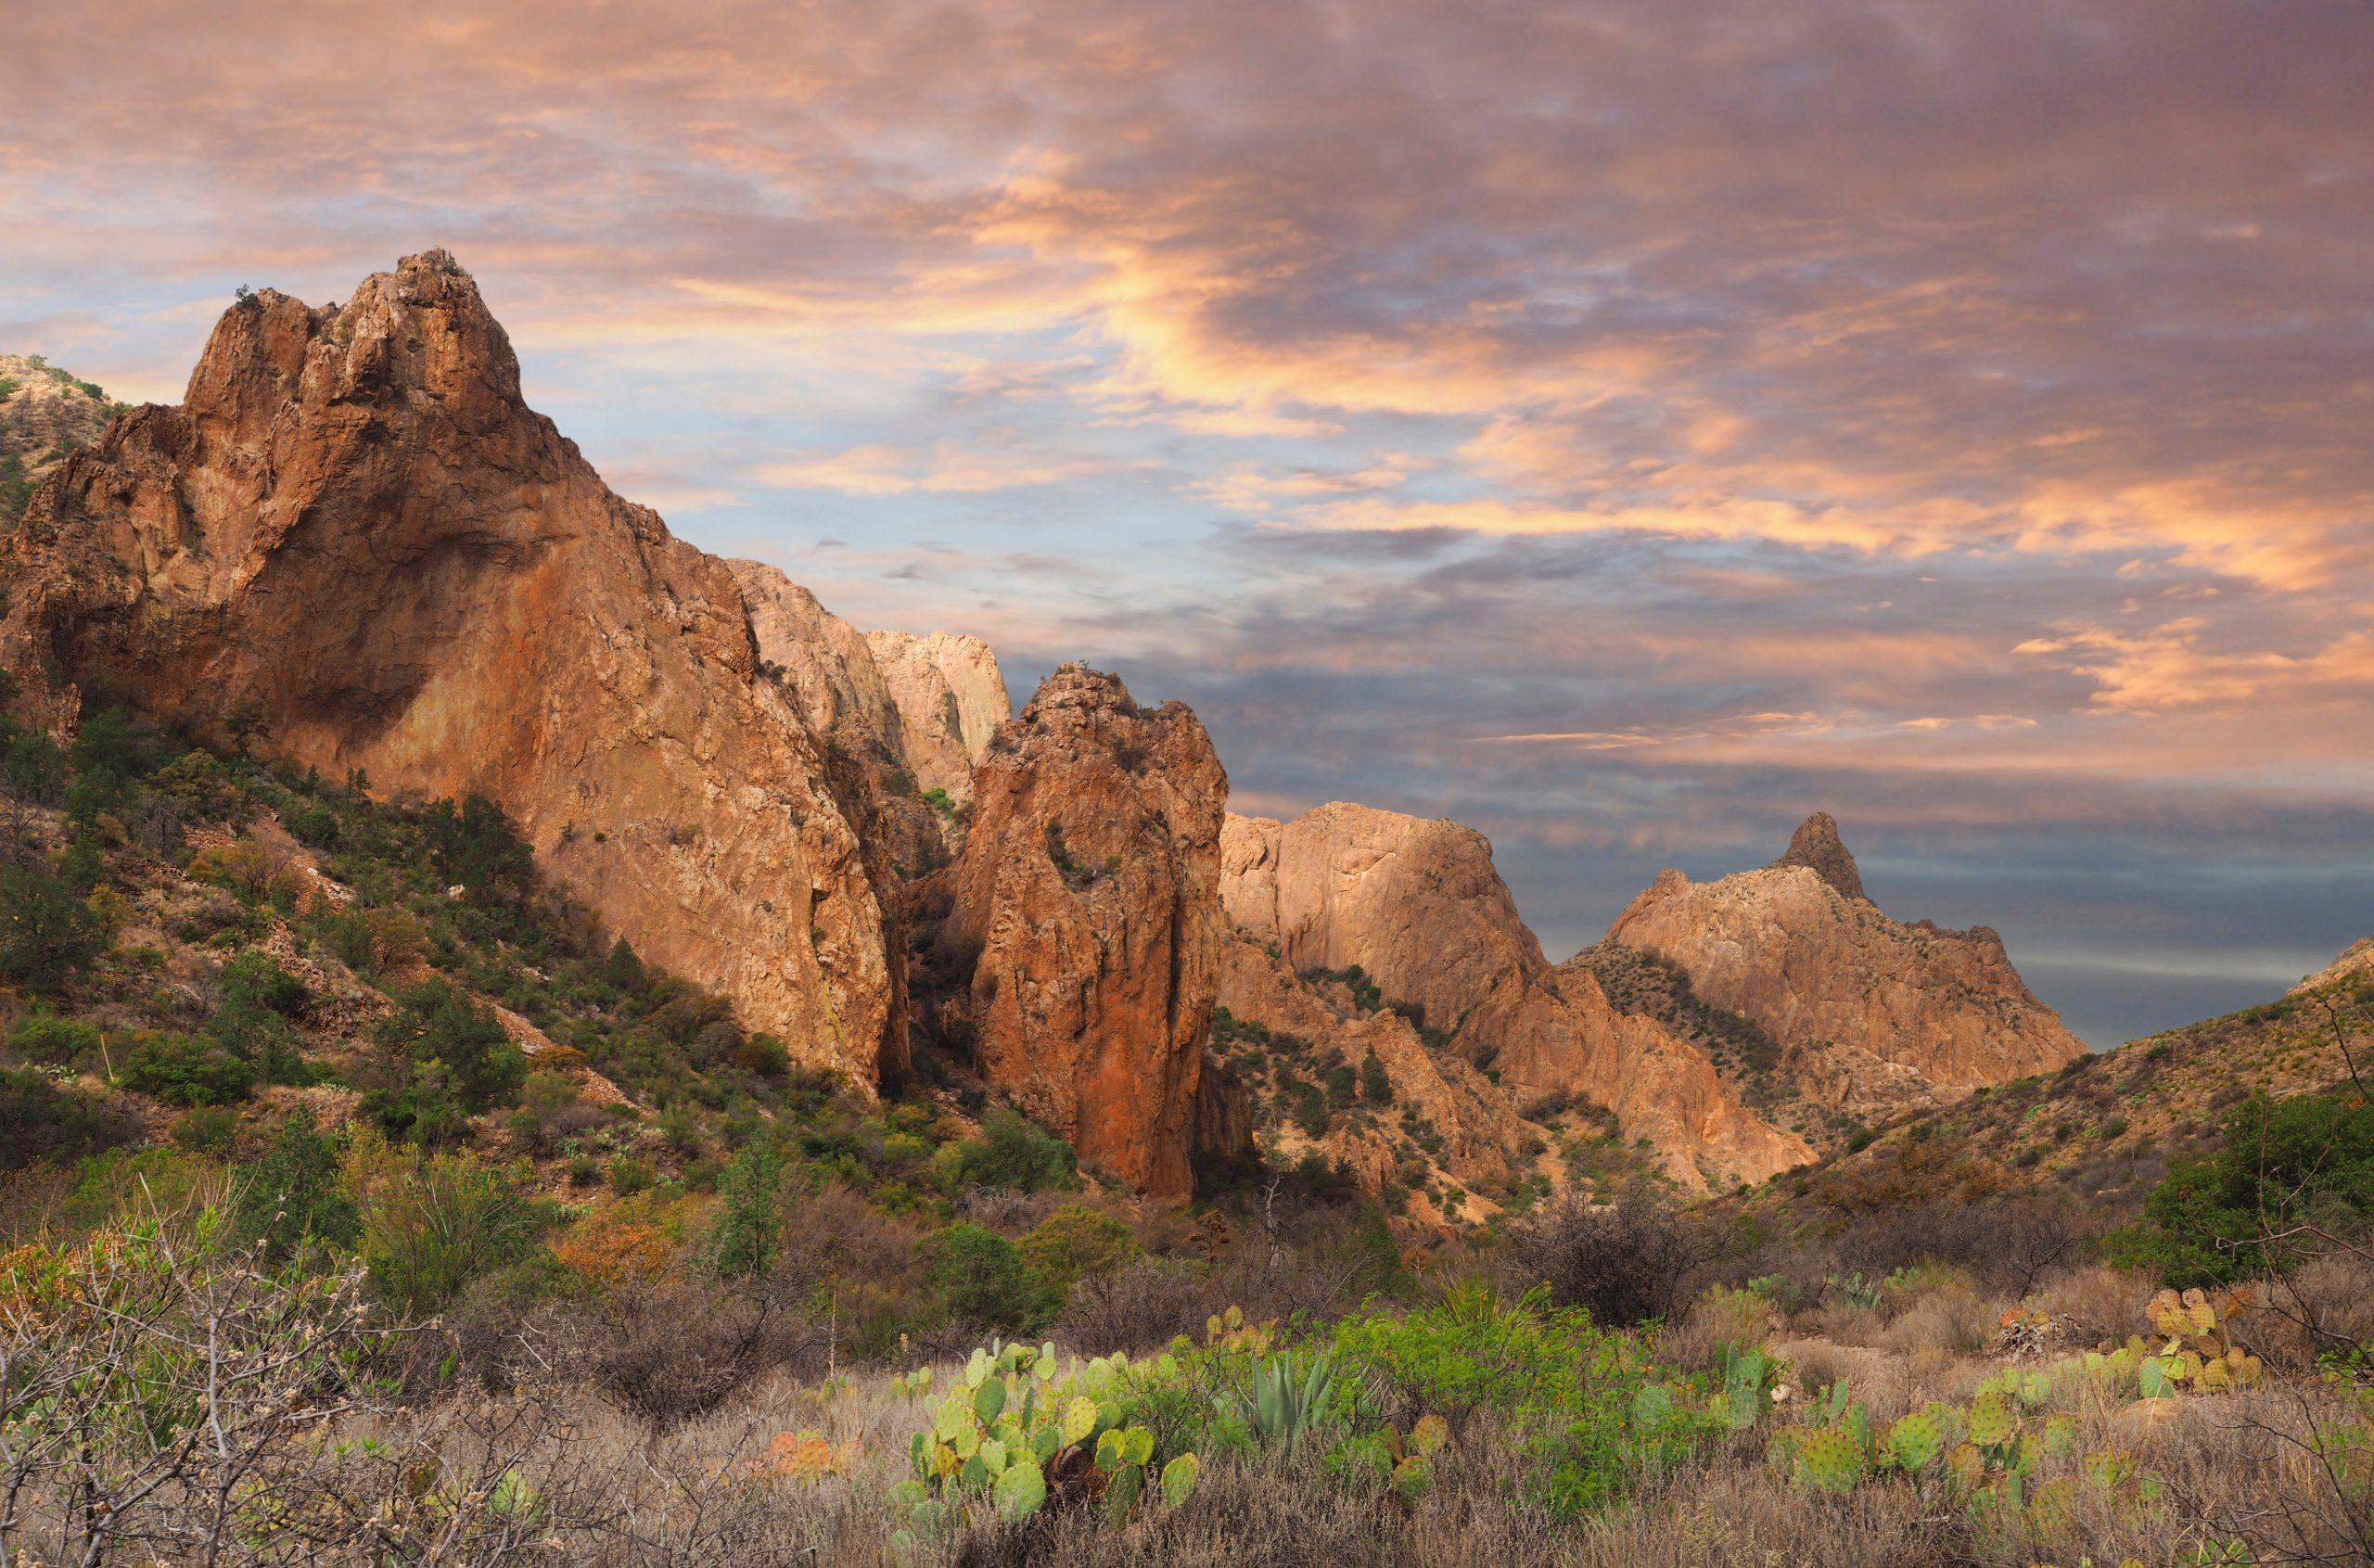 chisos basin mountains in texas at sunset